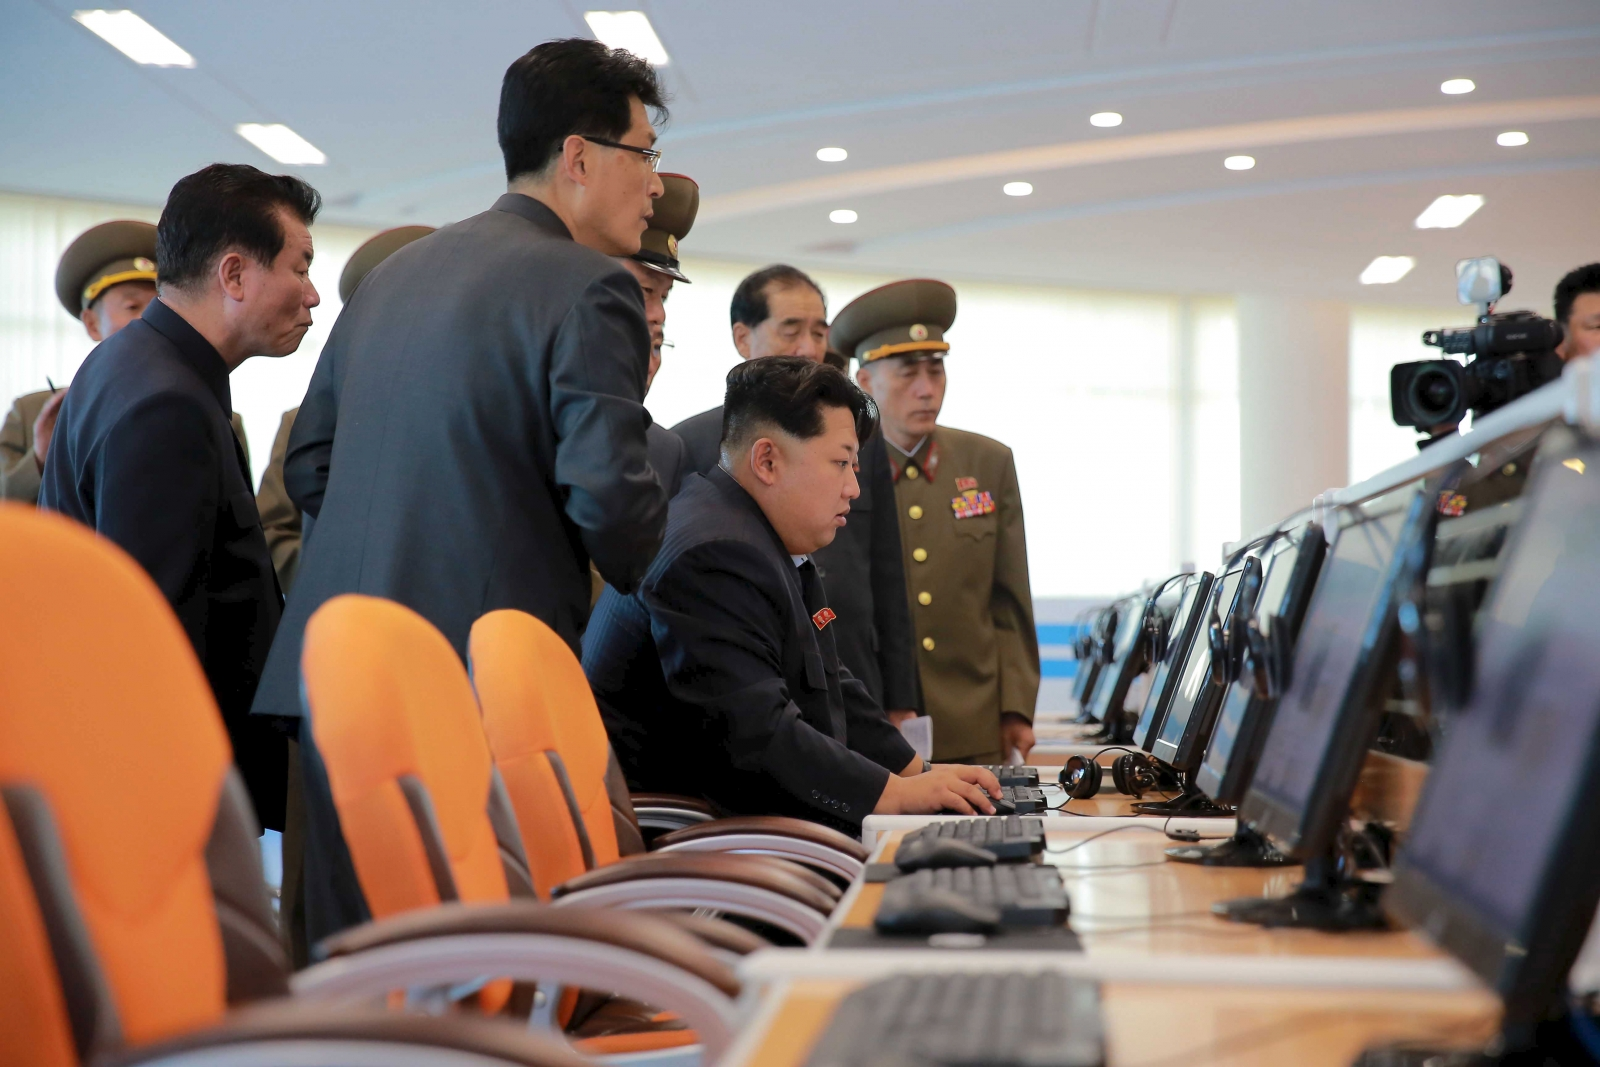 Pwned: North Korea's Facebook clone hacked by UK teen shortly after launch